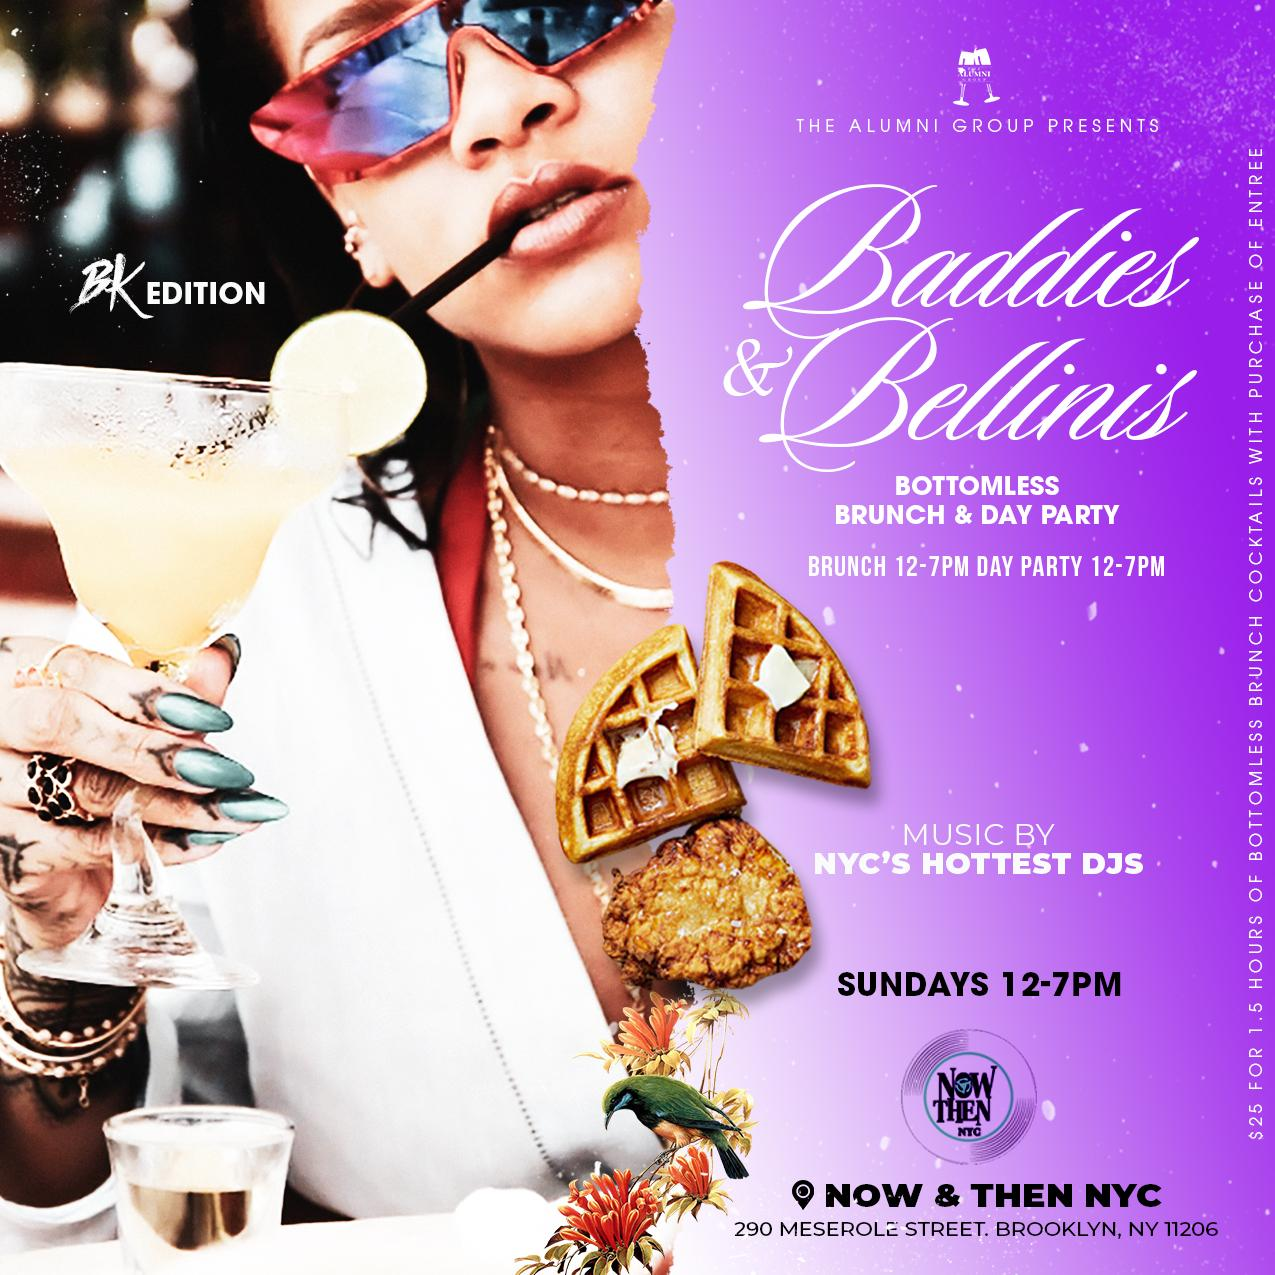 Baddies & Bellinis - Bottomless Brunch & Day Party BK Edition